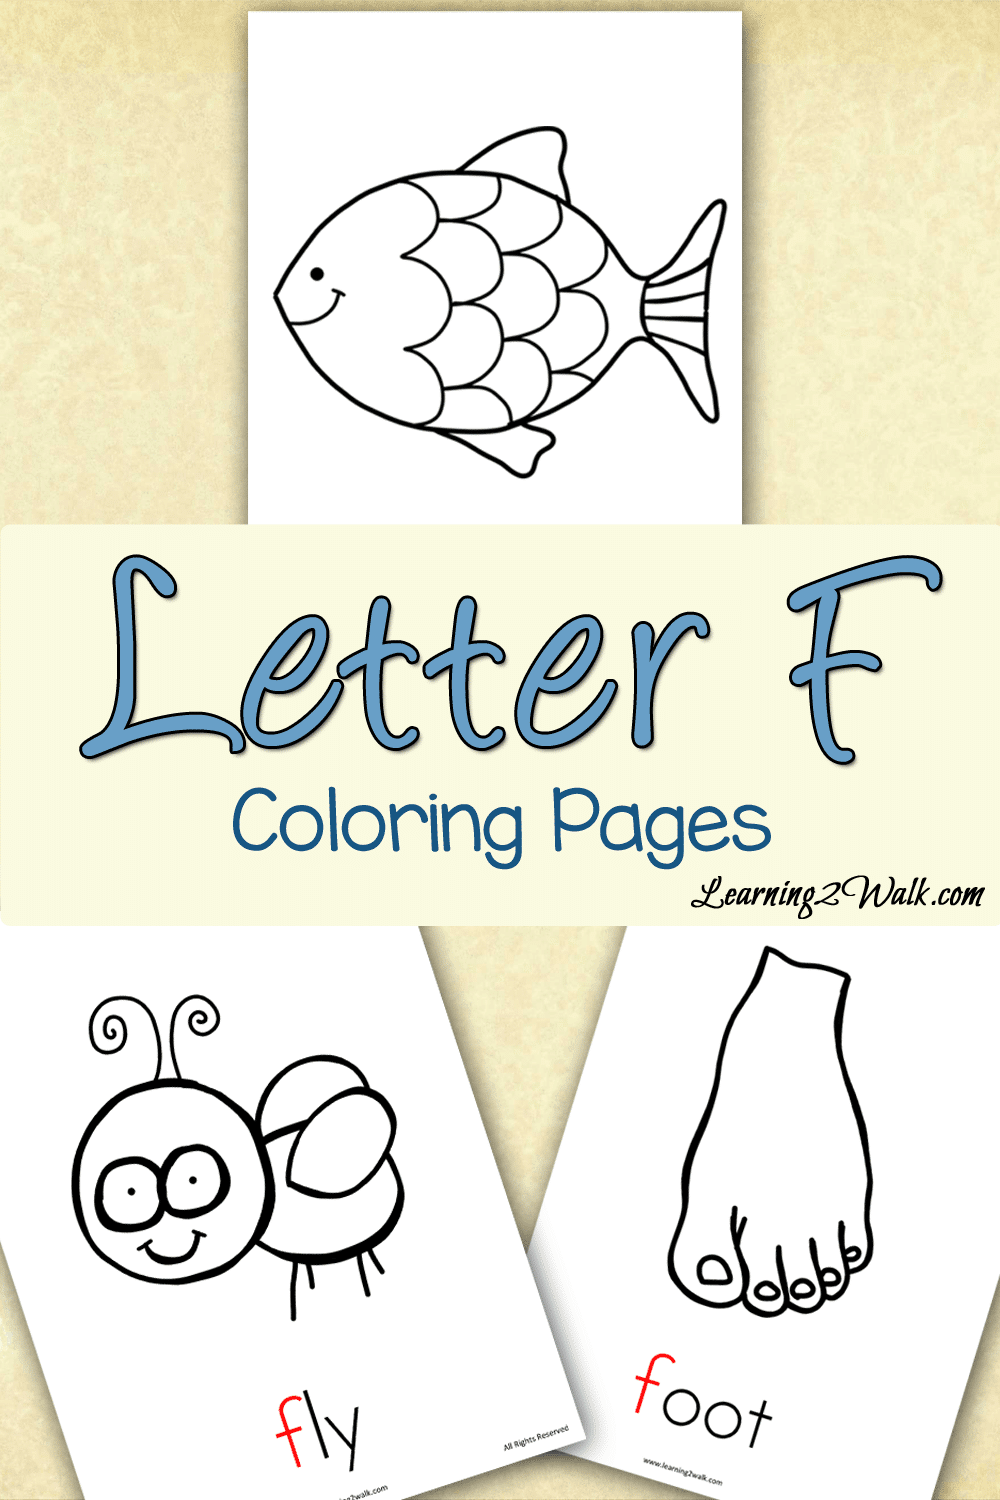 Preschool Letter Activities: Letter F Coloring Pages